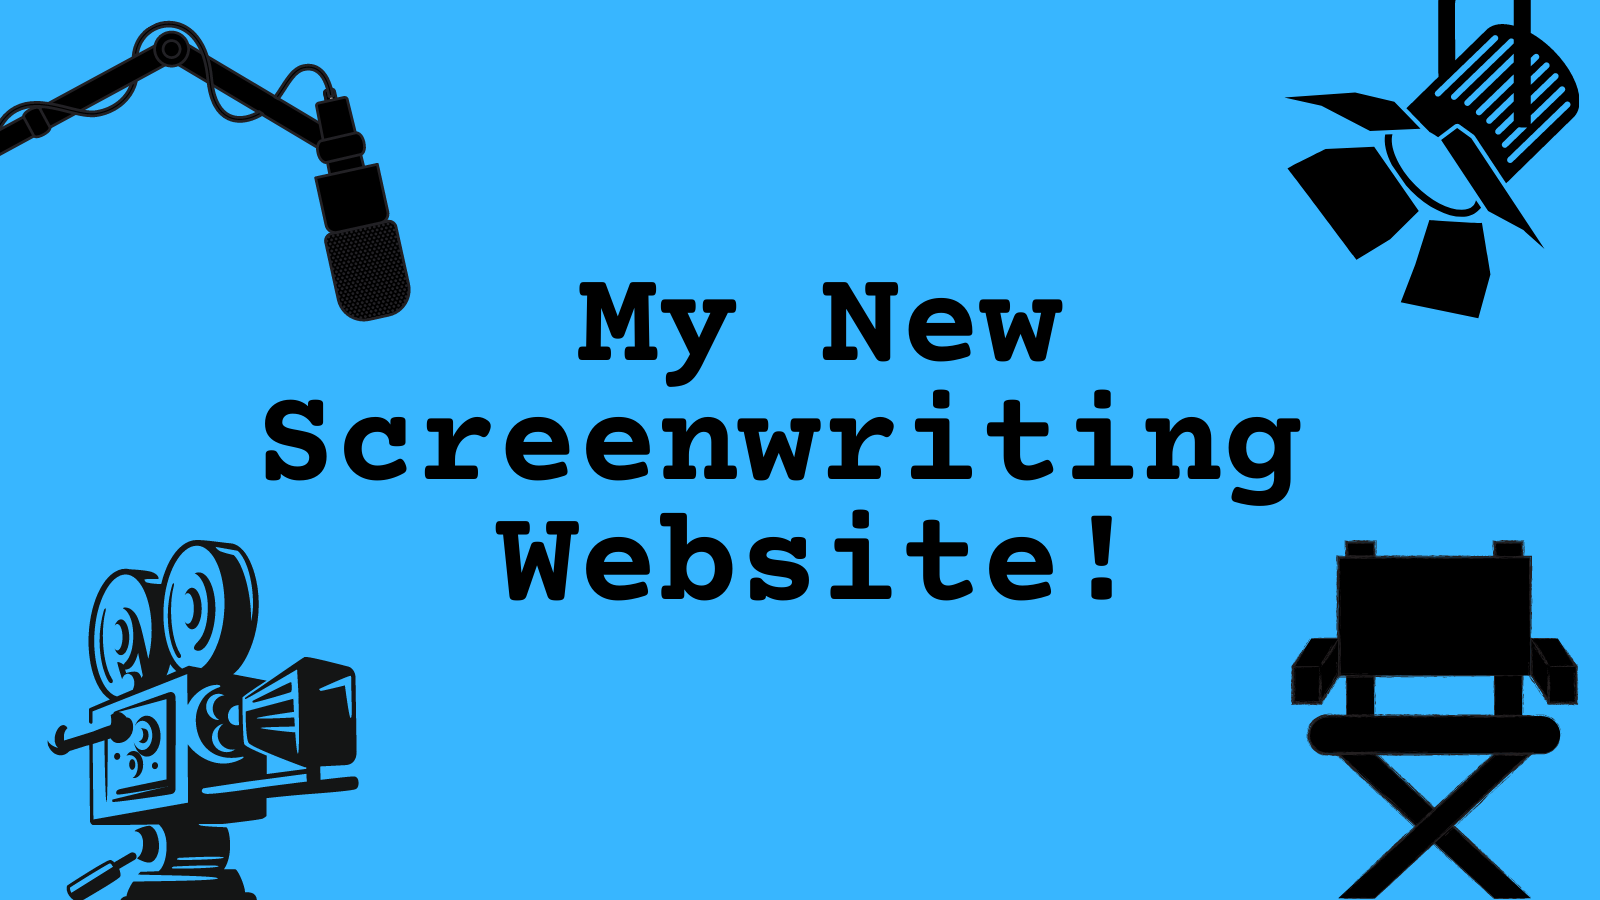 Divide and Conquer: I've Got a New Website Just for Screenwriting